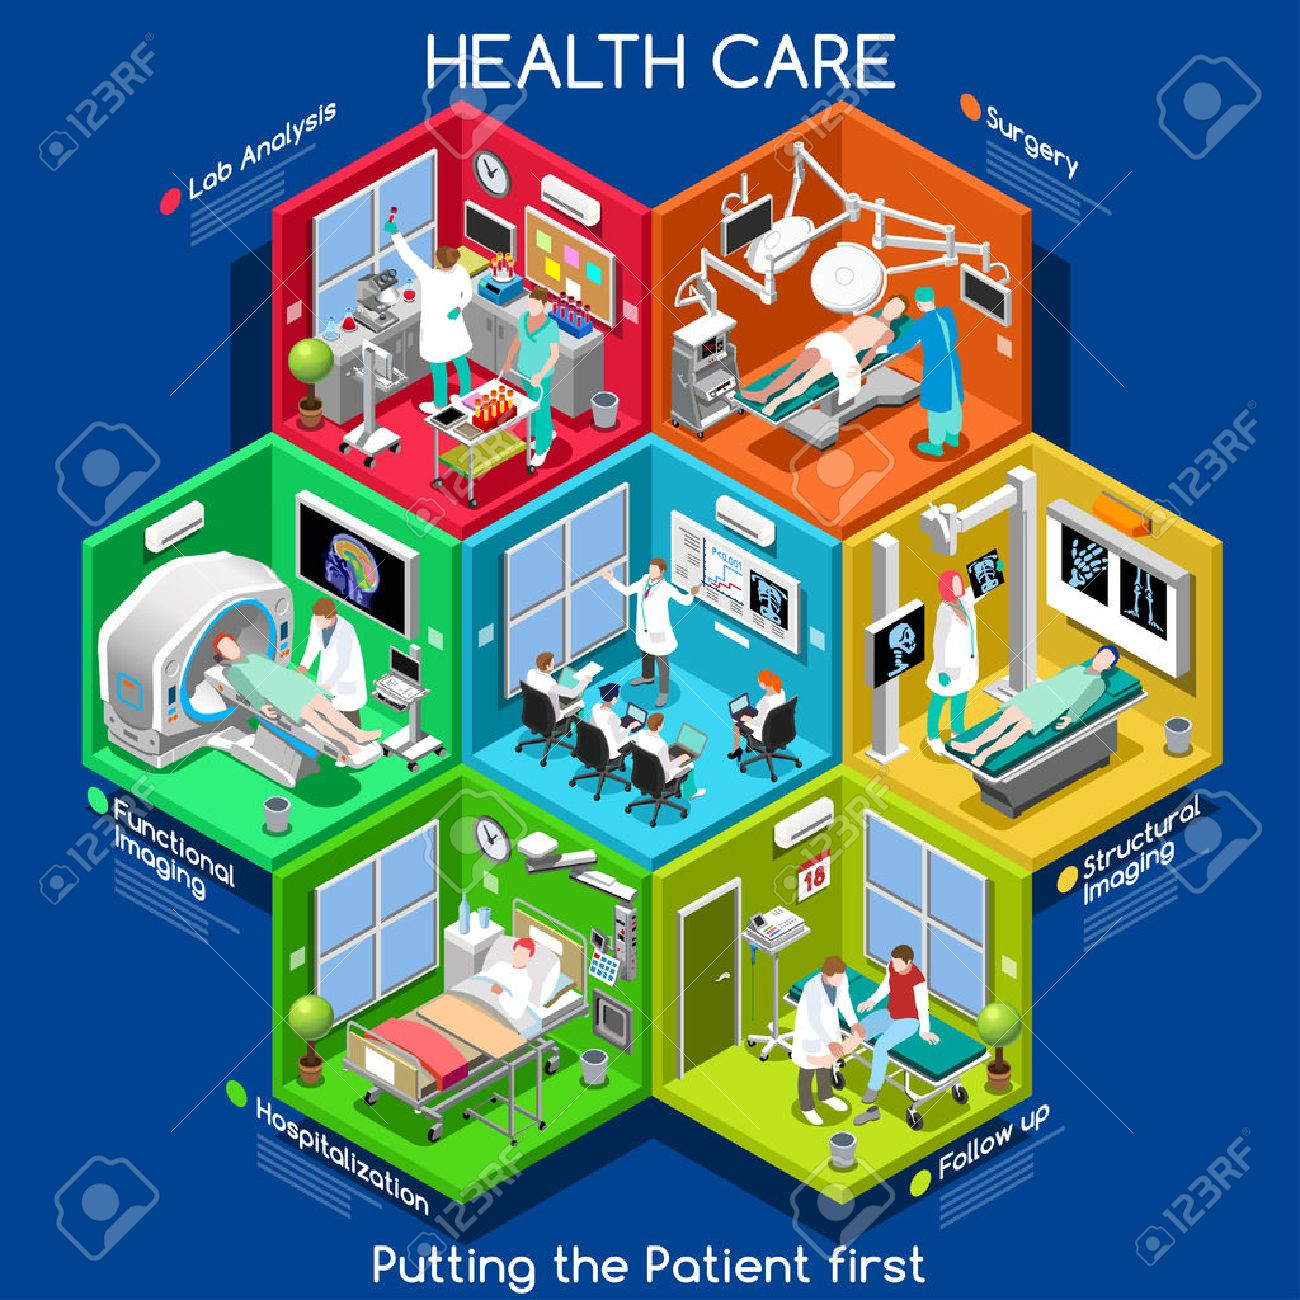 Clinical Trials and Healthcare. Hospital Departments with People NEW bright palette 3D Flat Vector Icon Set. Rooms with Patients Doctors Nurses Scrubs Staff Support Workers. Putting the Patient 1ST - 46505465